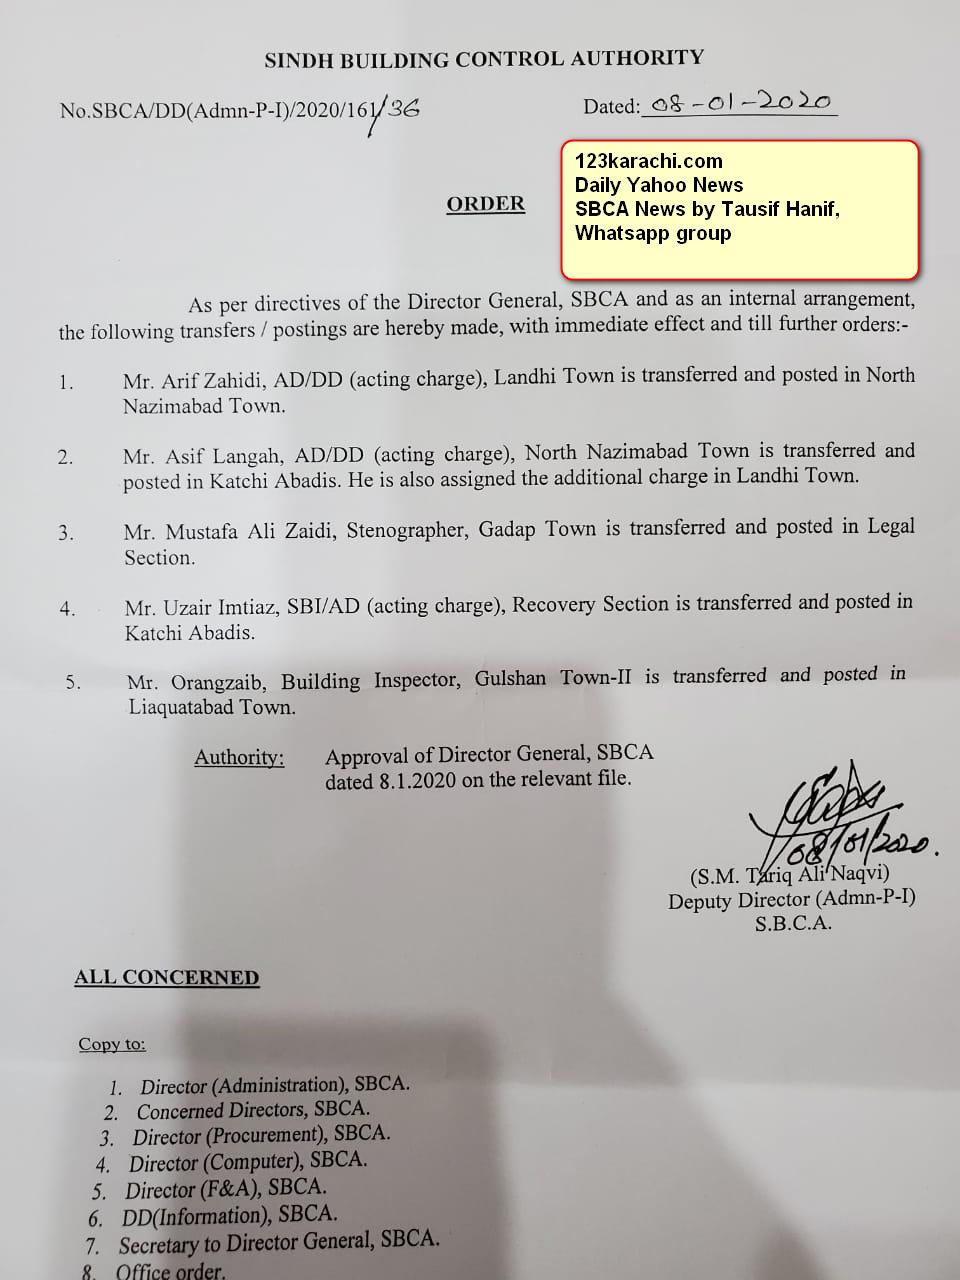 SBCA Director and other officers replaced and postings orders issued on 8th Dec 2019